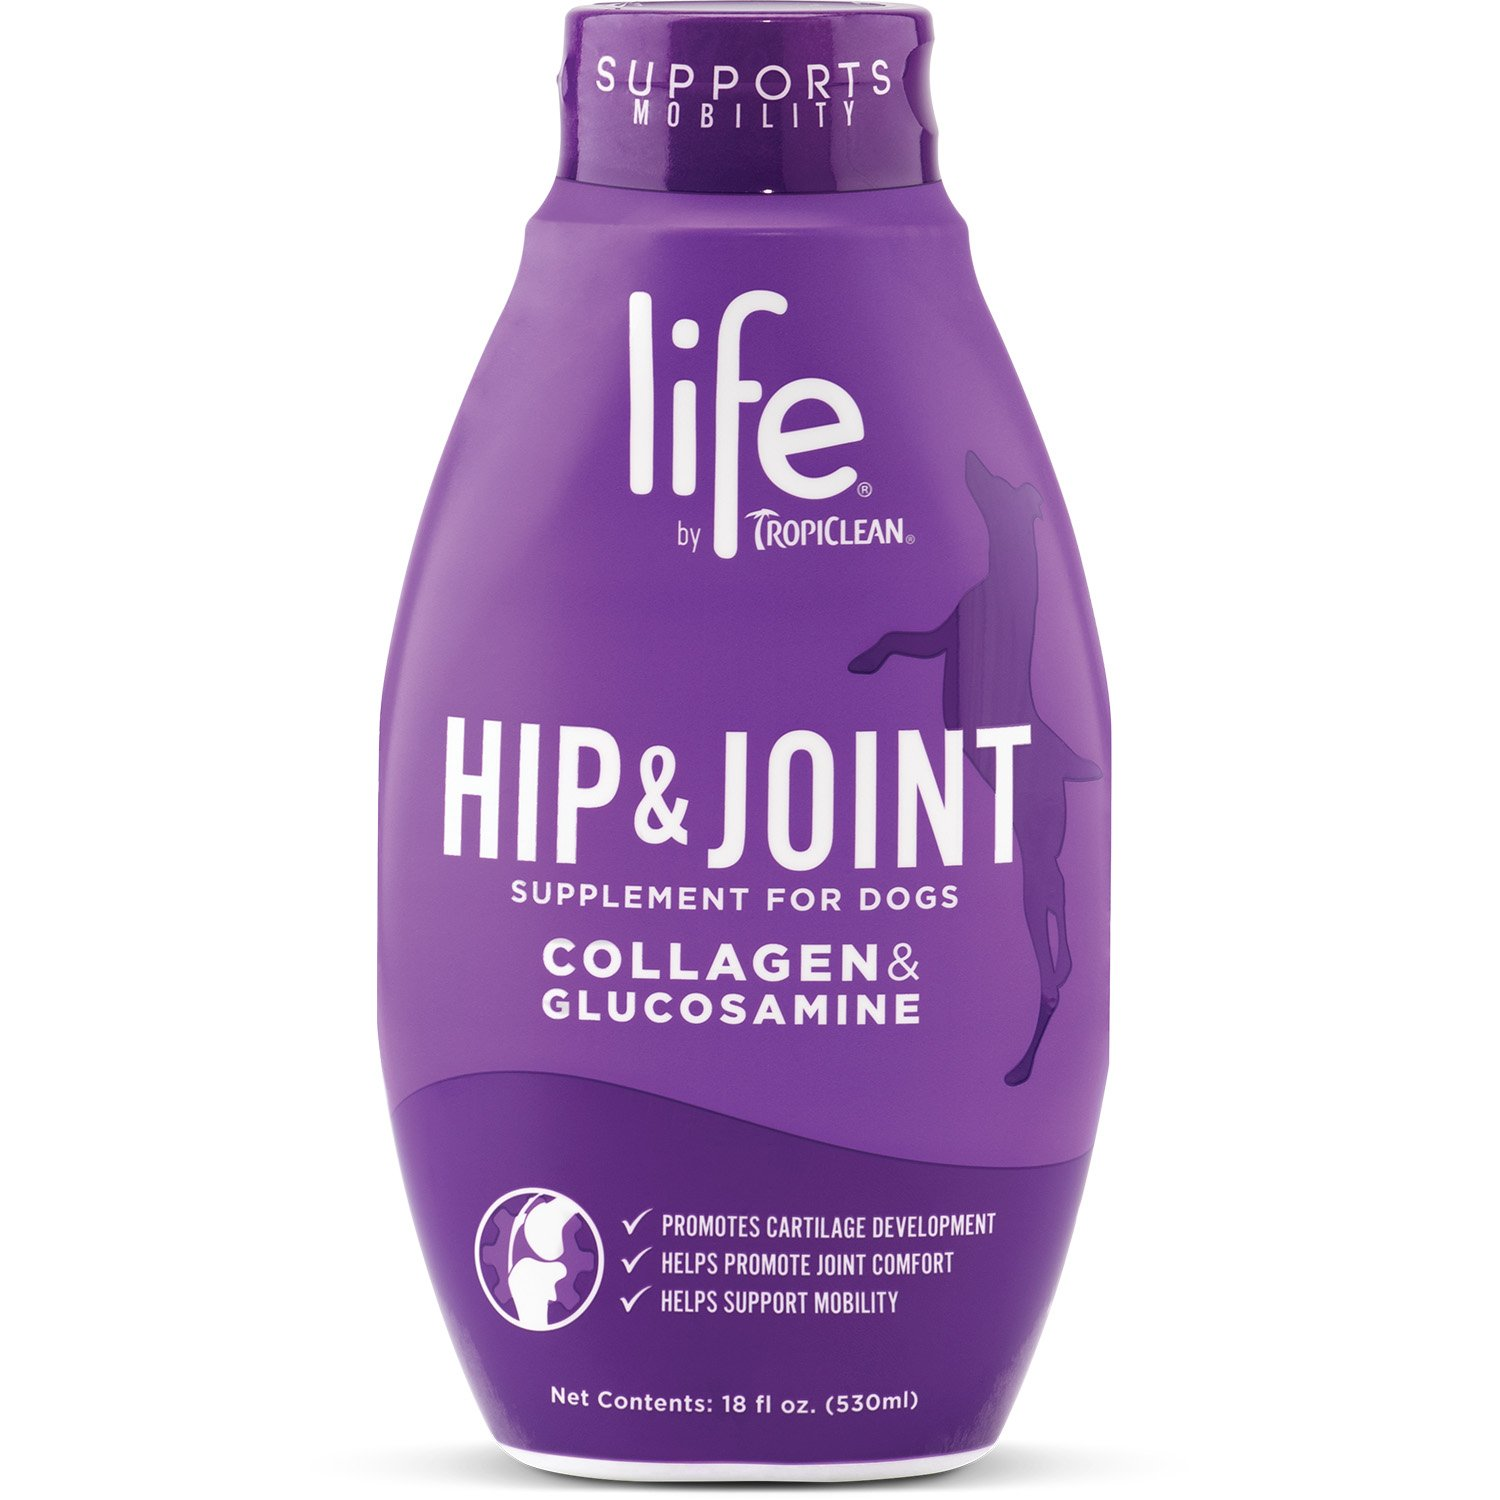 TropiClean Life Hip and Joint Supplement for Dogs, 18oz, Made in USA by TropiClean